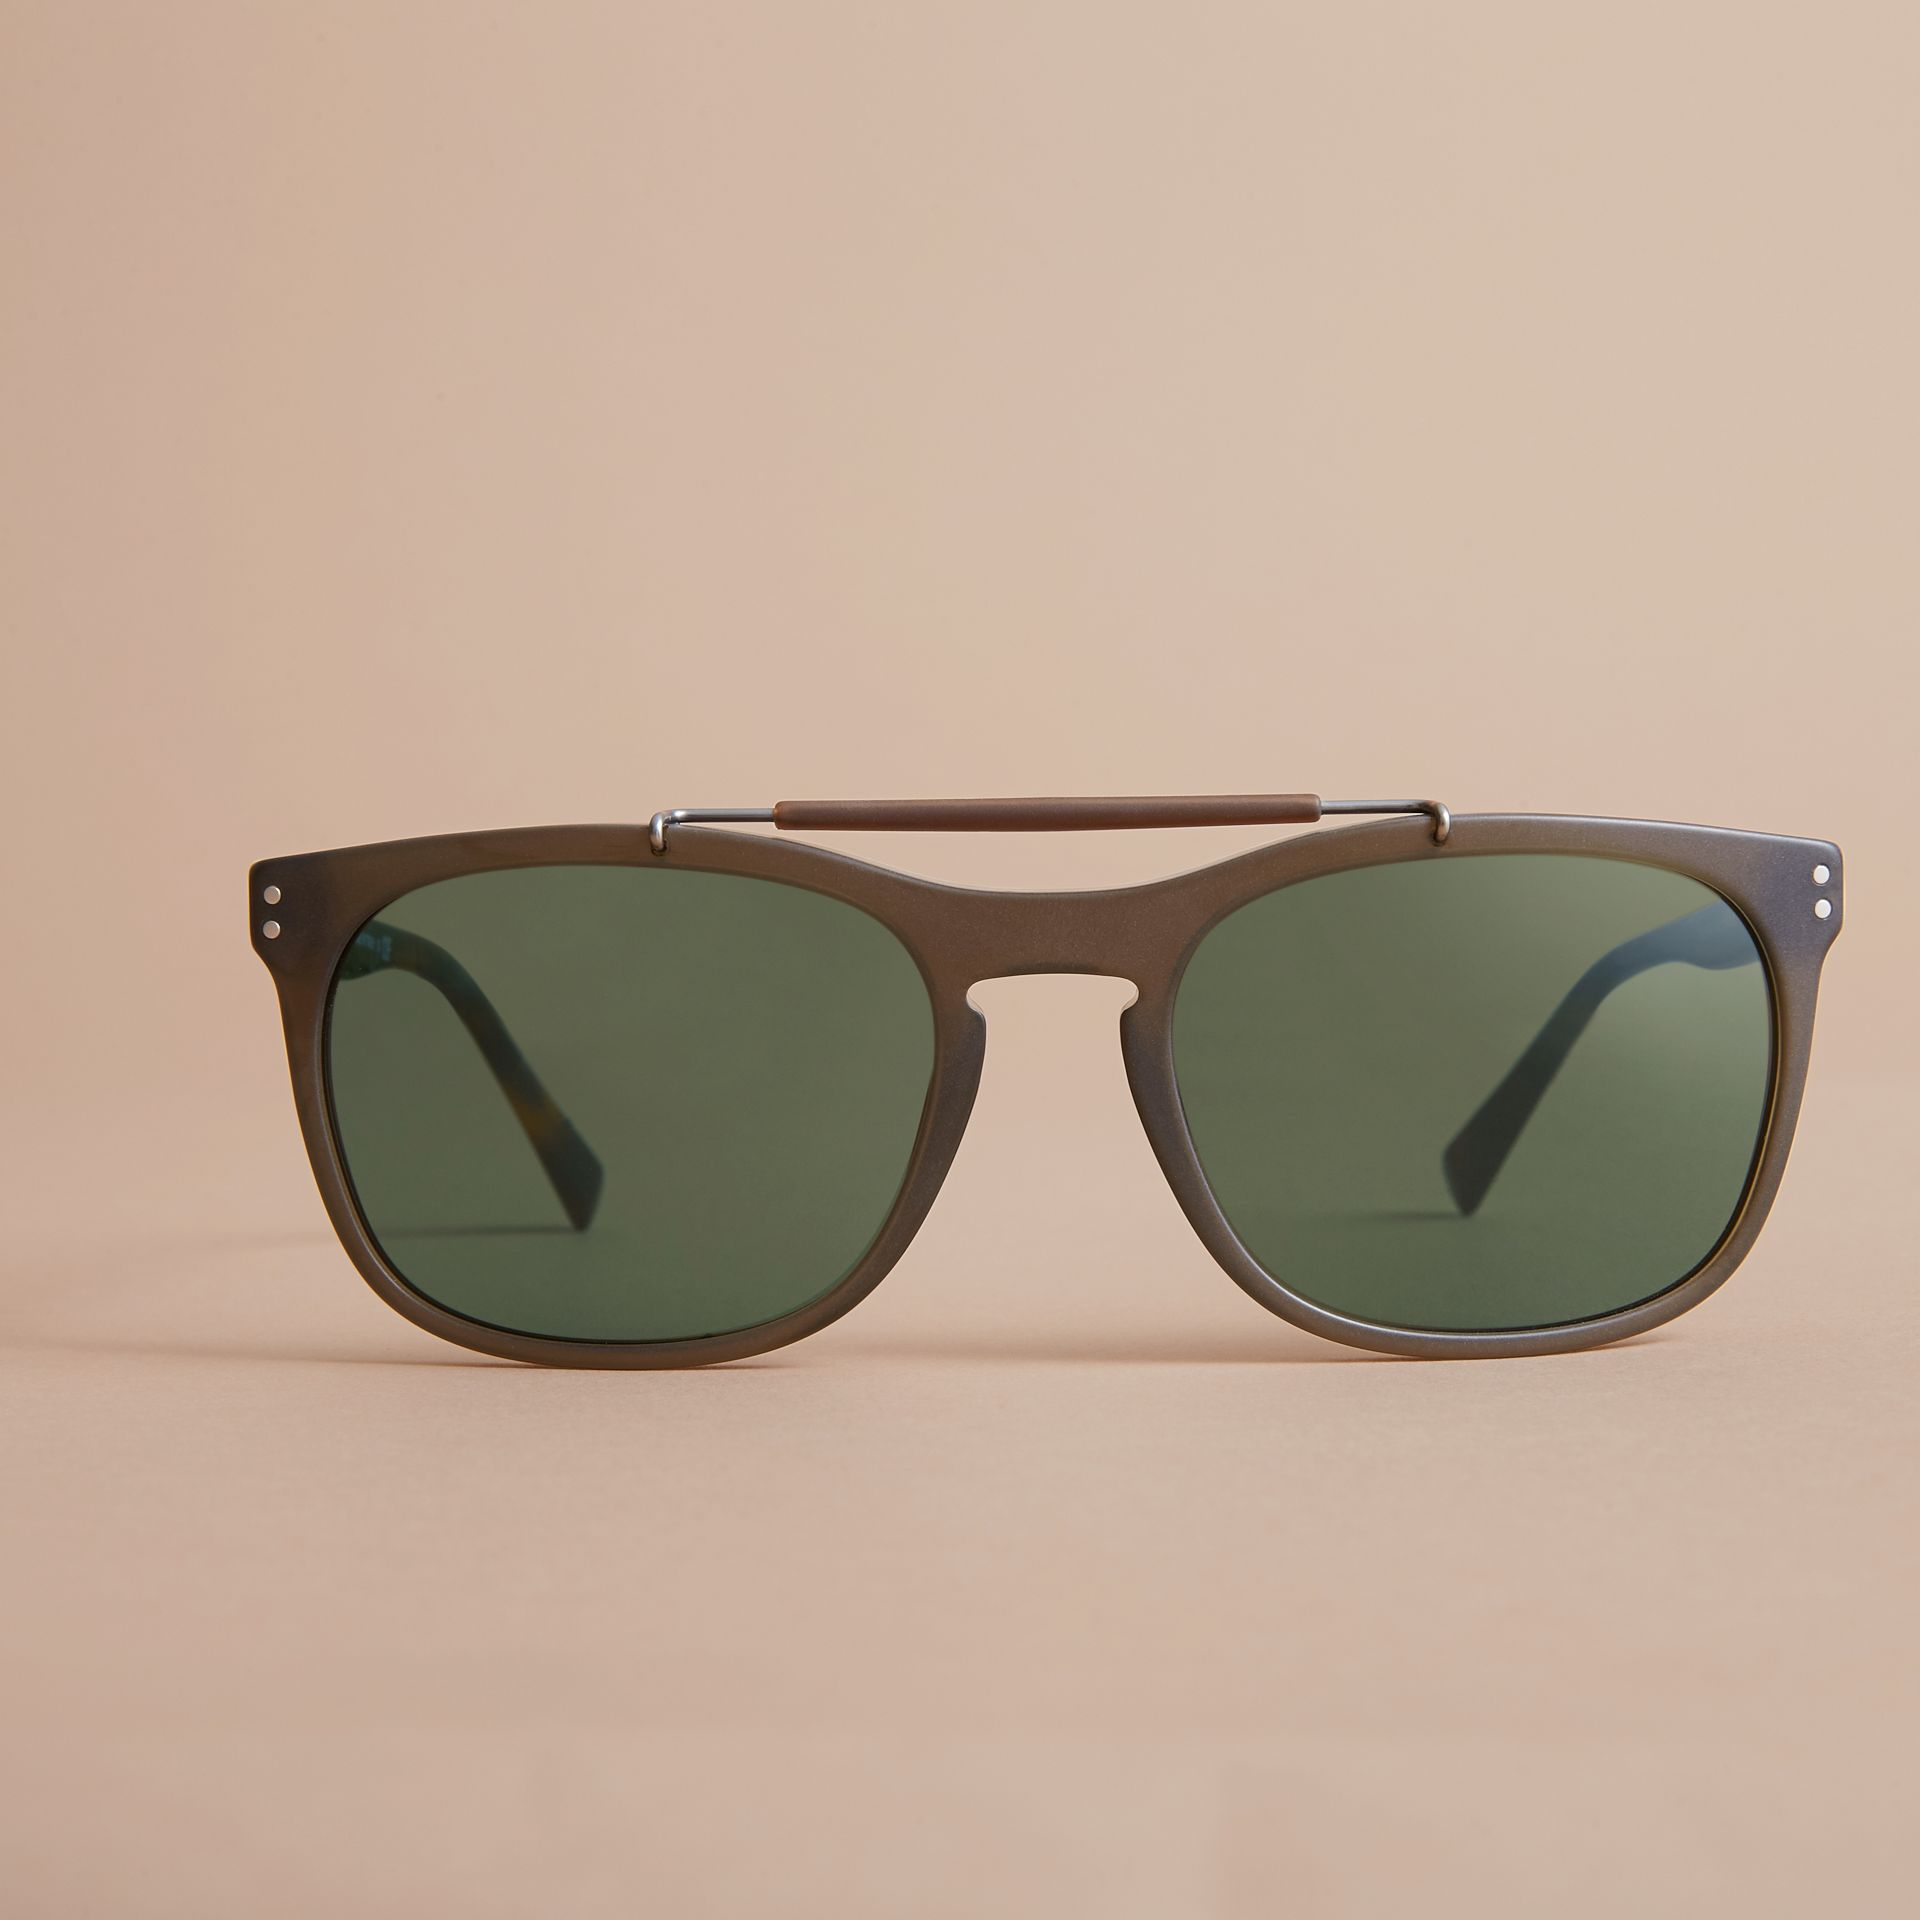 Top Bar Square Frame Sunglasses in Olive - Men | Burberry Canada - gallery image 3